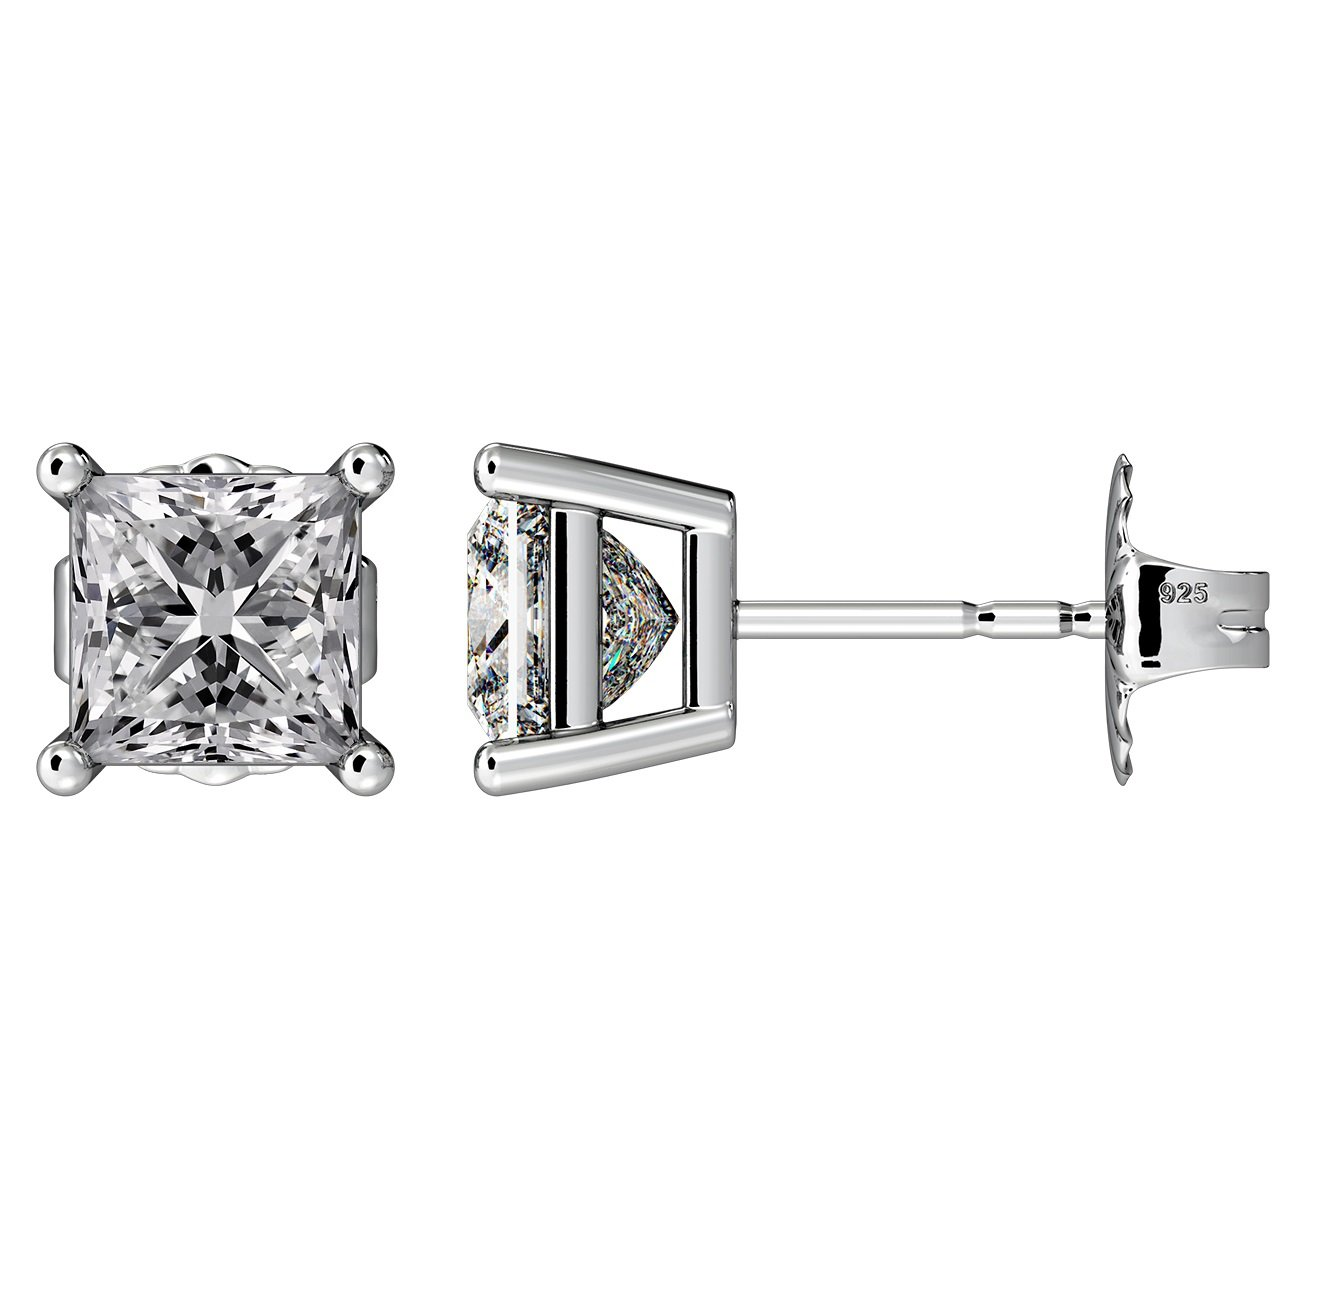 NANA Silver Princess CZ Stud Earrings with 14k Solid Gold Post-5.5mm-2.00cttw-Platinum Plated